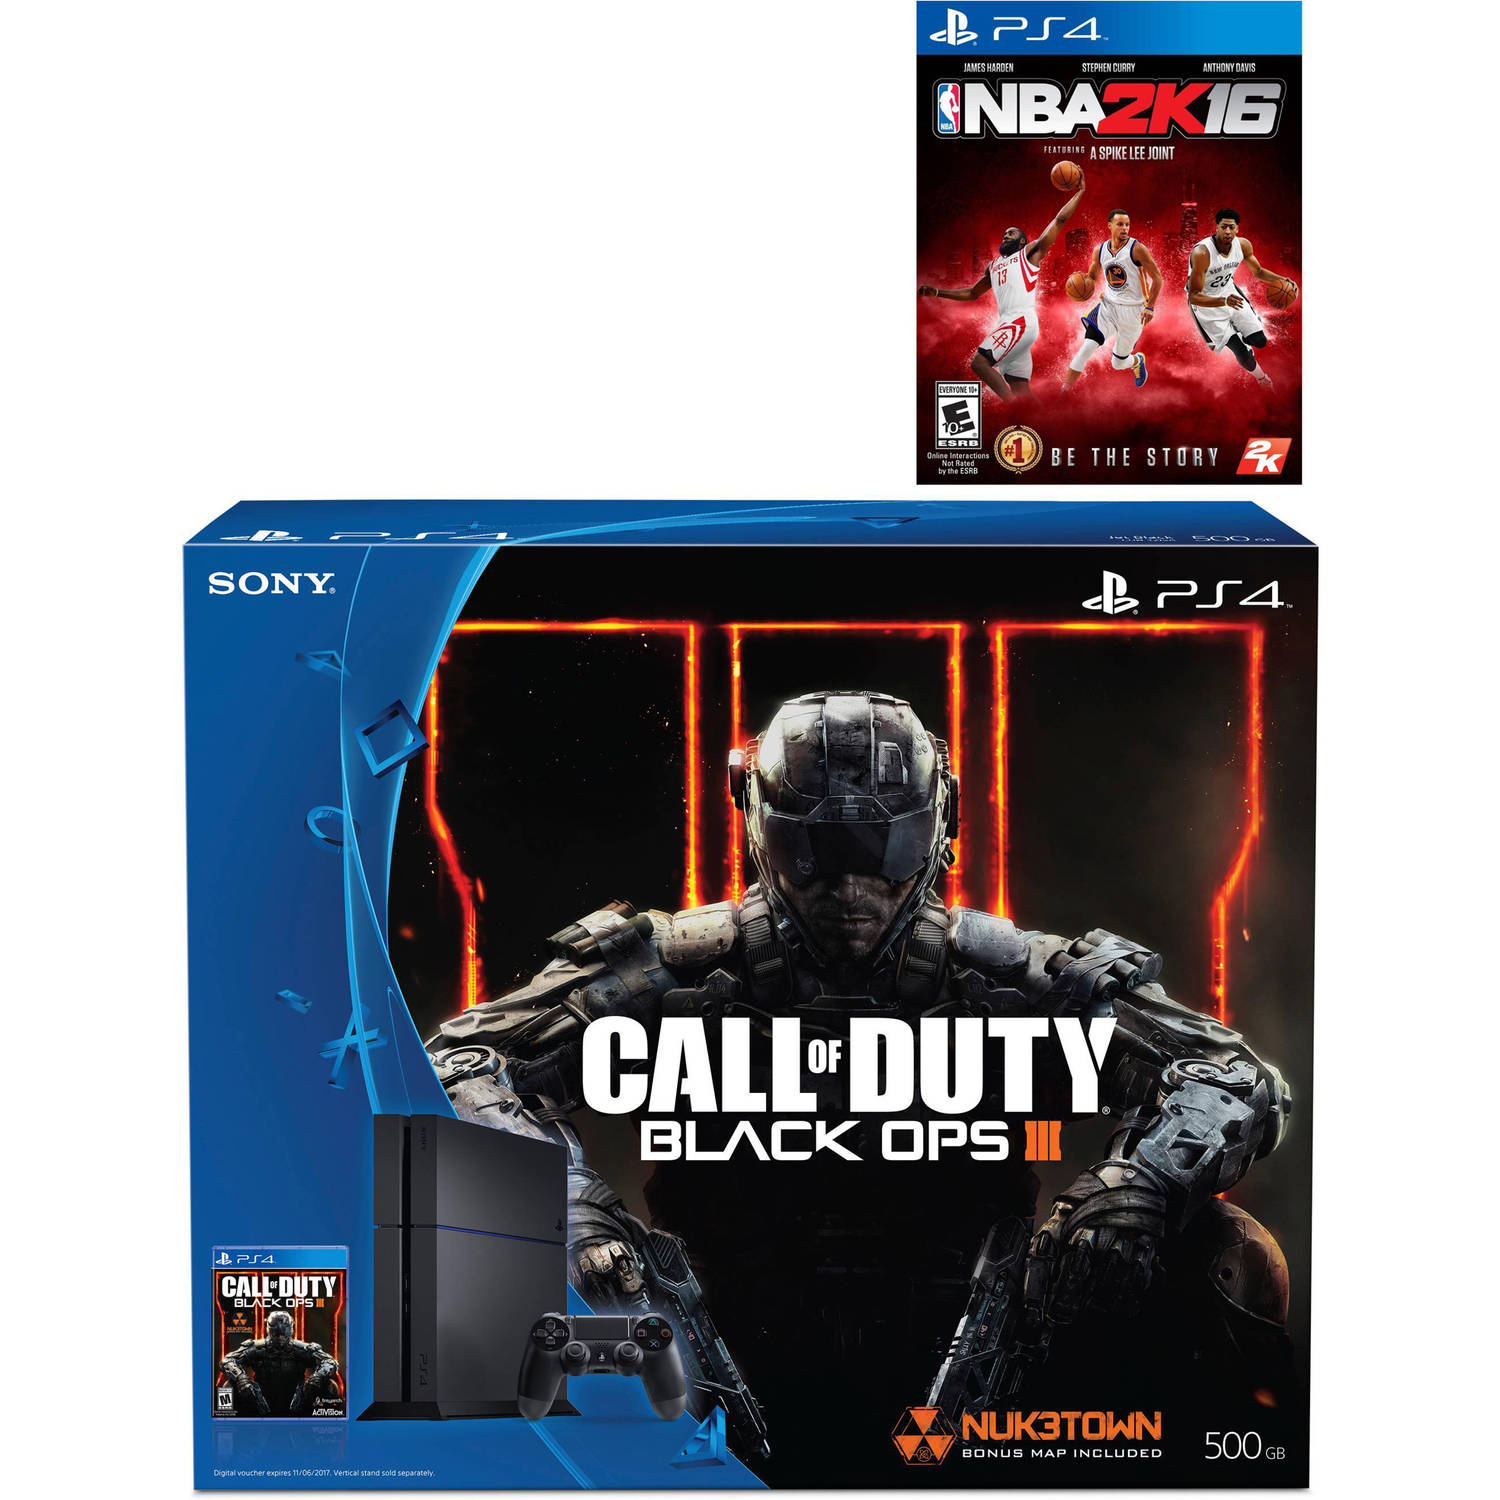 Sony PlayStation 4 System 500GB with Call of Duty: Black Ops 3 Standard Edition Disc and NBA 2K16 Disc